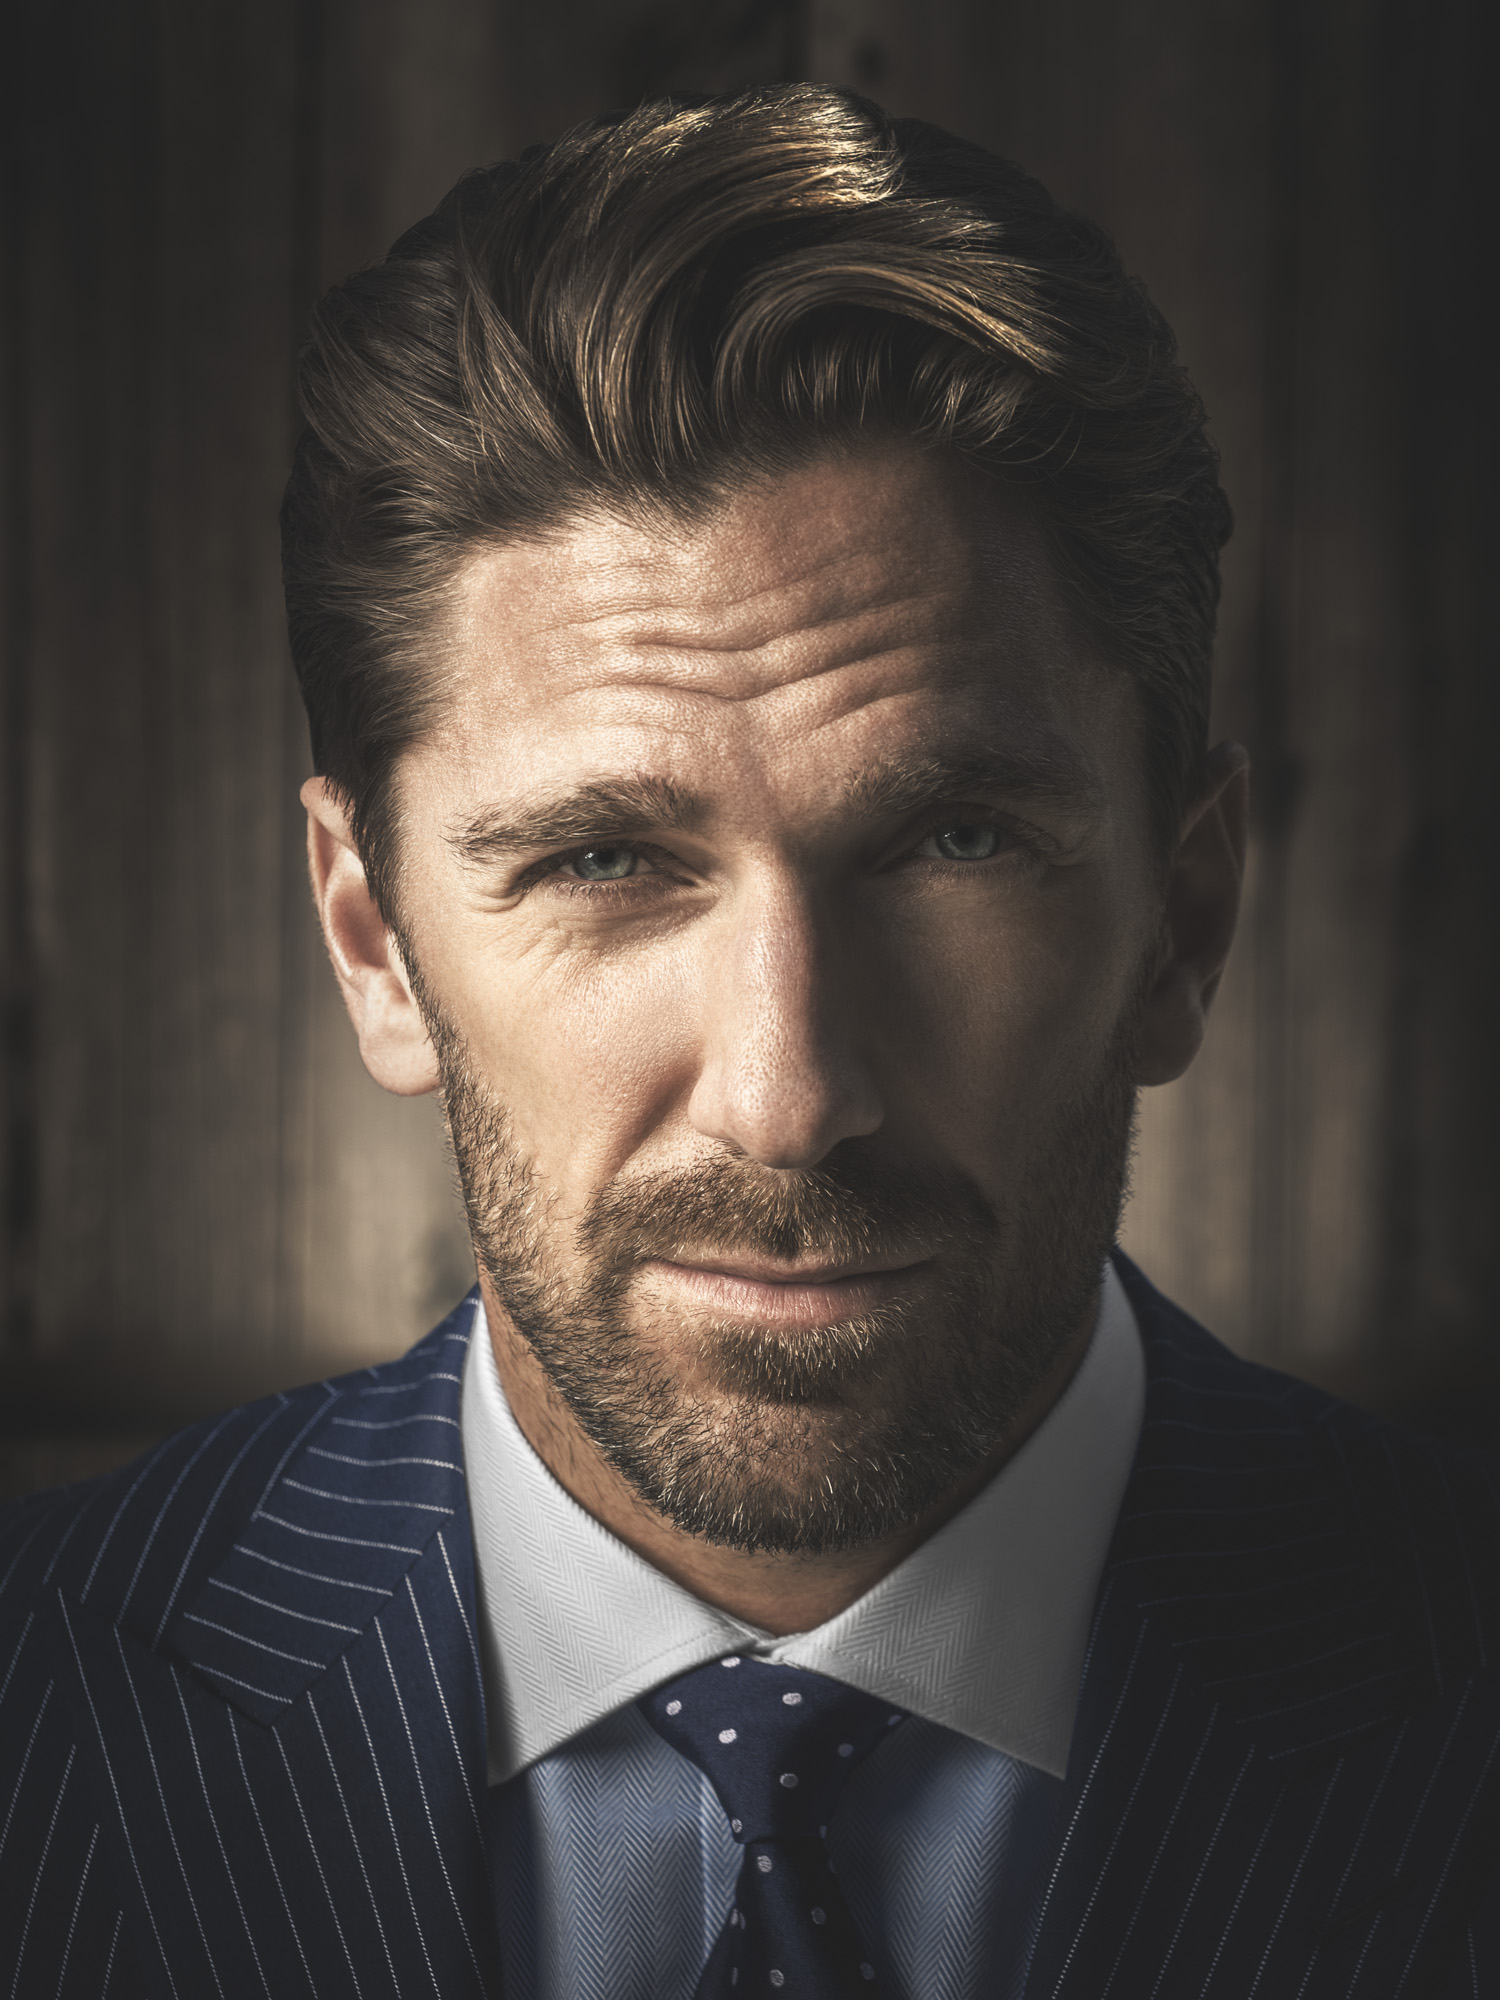 cc2014051 - Henrik Lundqvist for New York Observer.